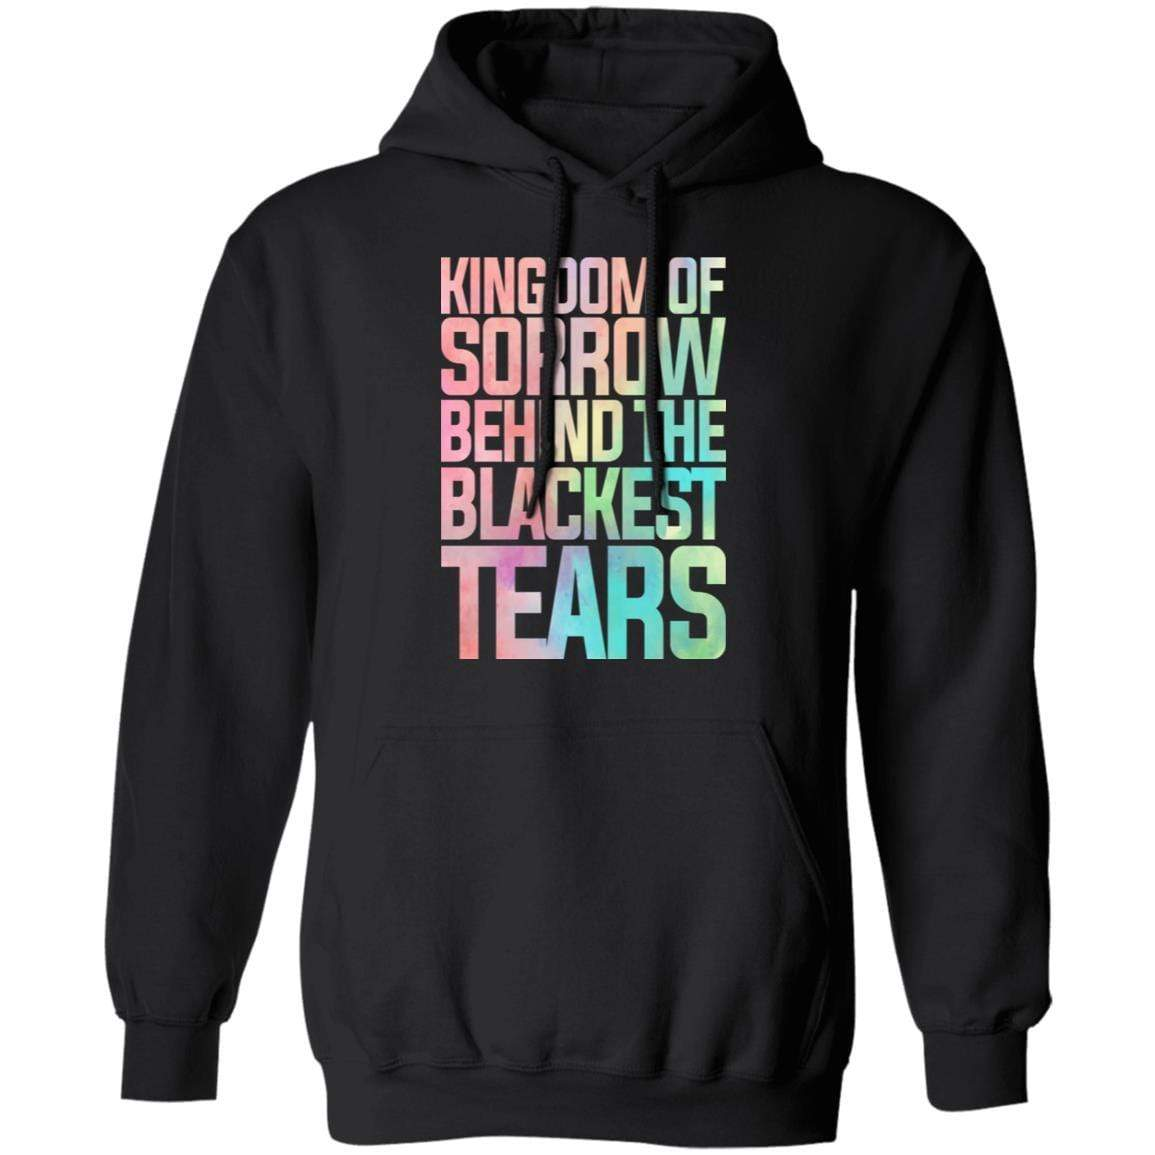 Kingdom Of Sorrow Behind The Blackest Tears T-Shirts, Hoodies 541-4740-87589178-23087 - Tee Ript